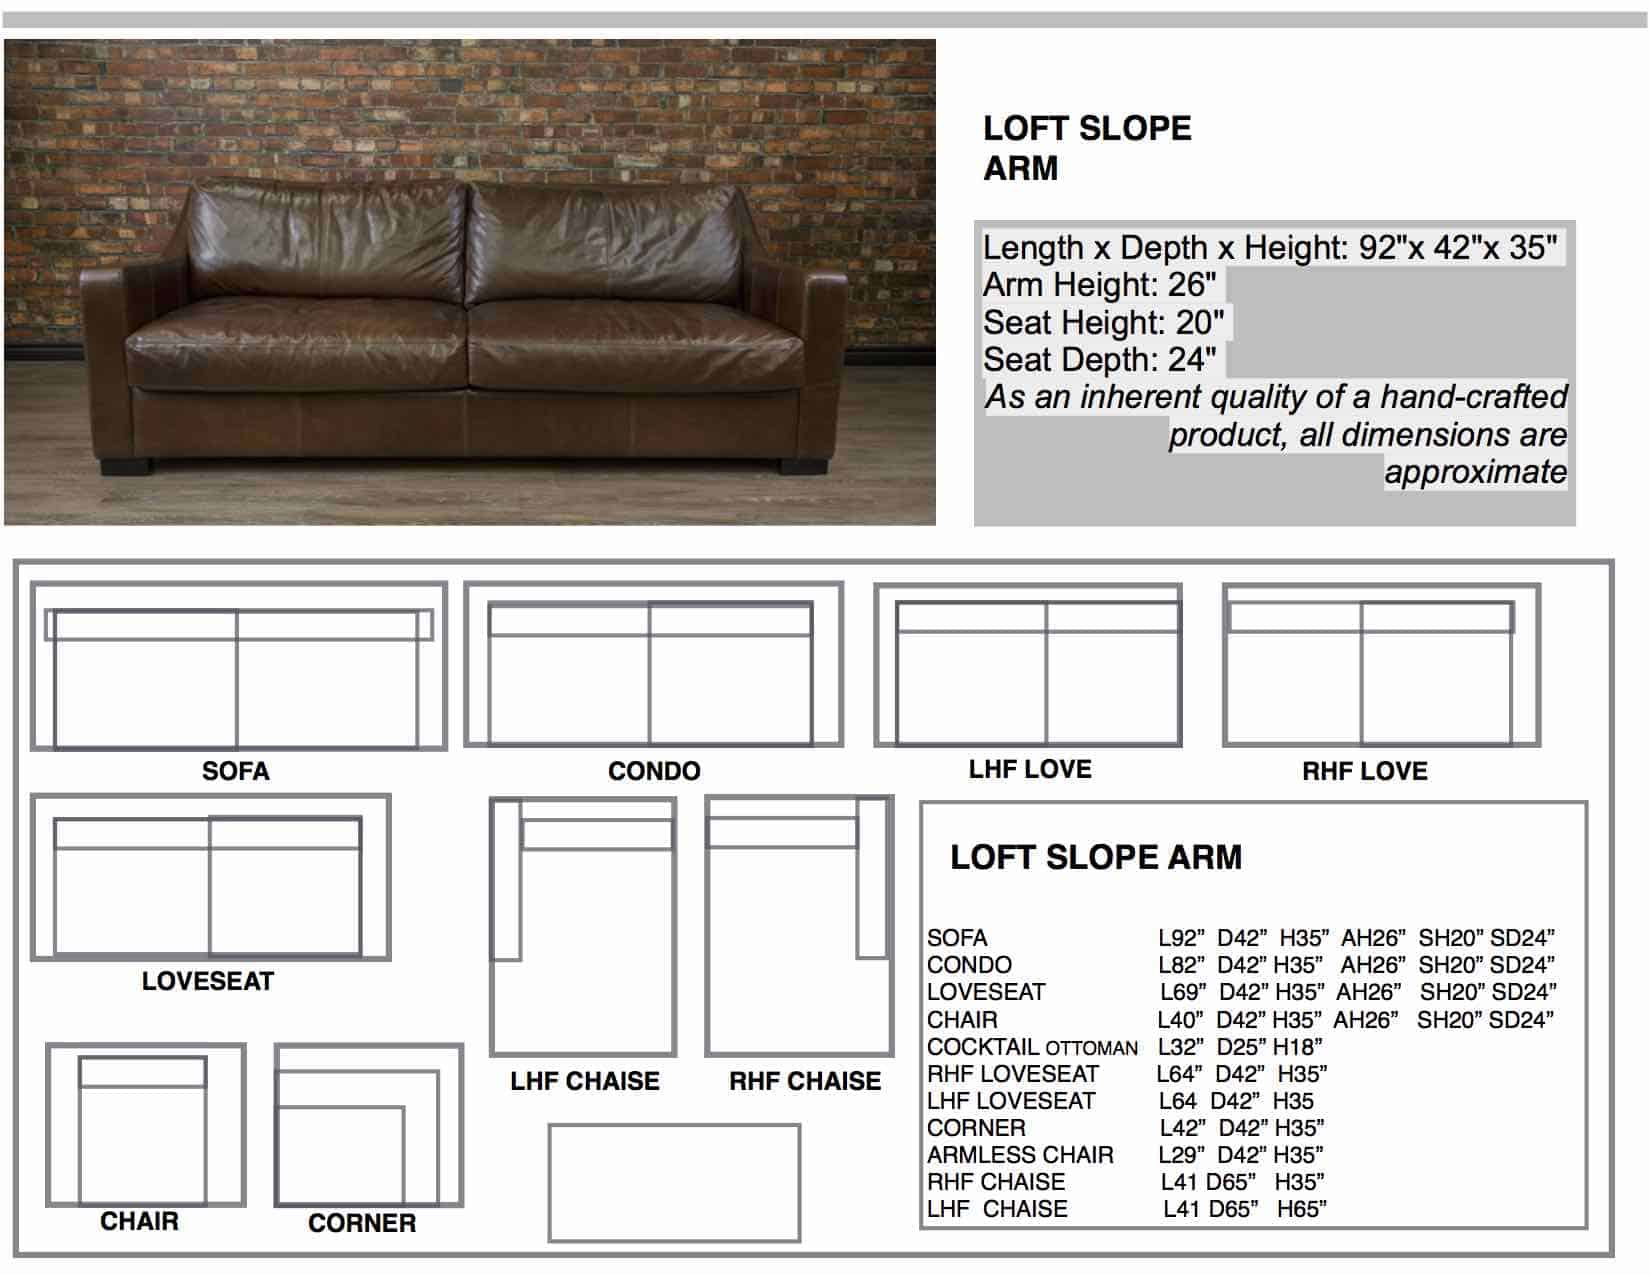 Loft Slope Arm Leather Sofa | Canada's Boss Leather Sofas And Furniture Intended For Loft Arm Sofa Chairs (View 12 of 25)